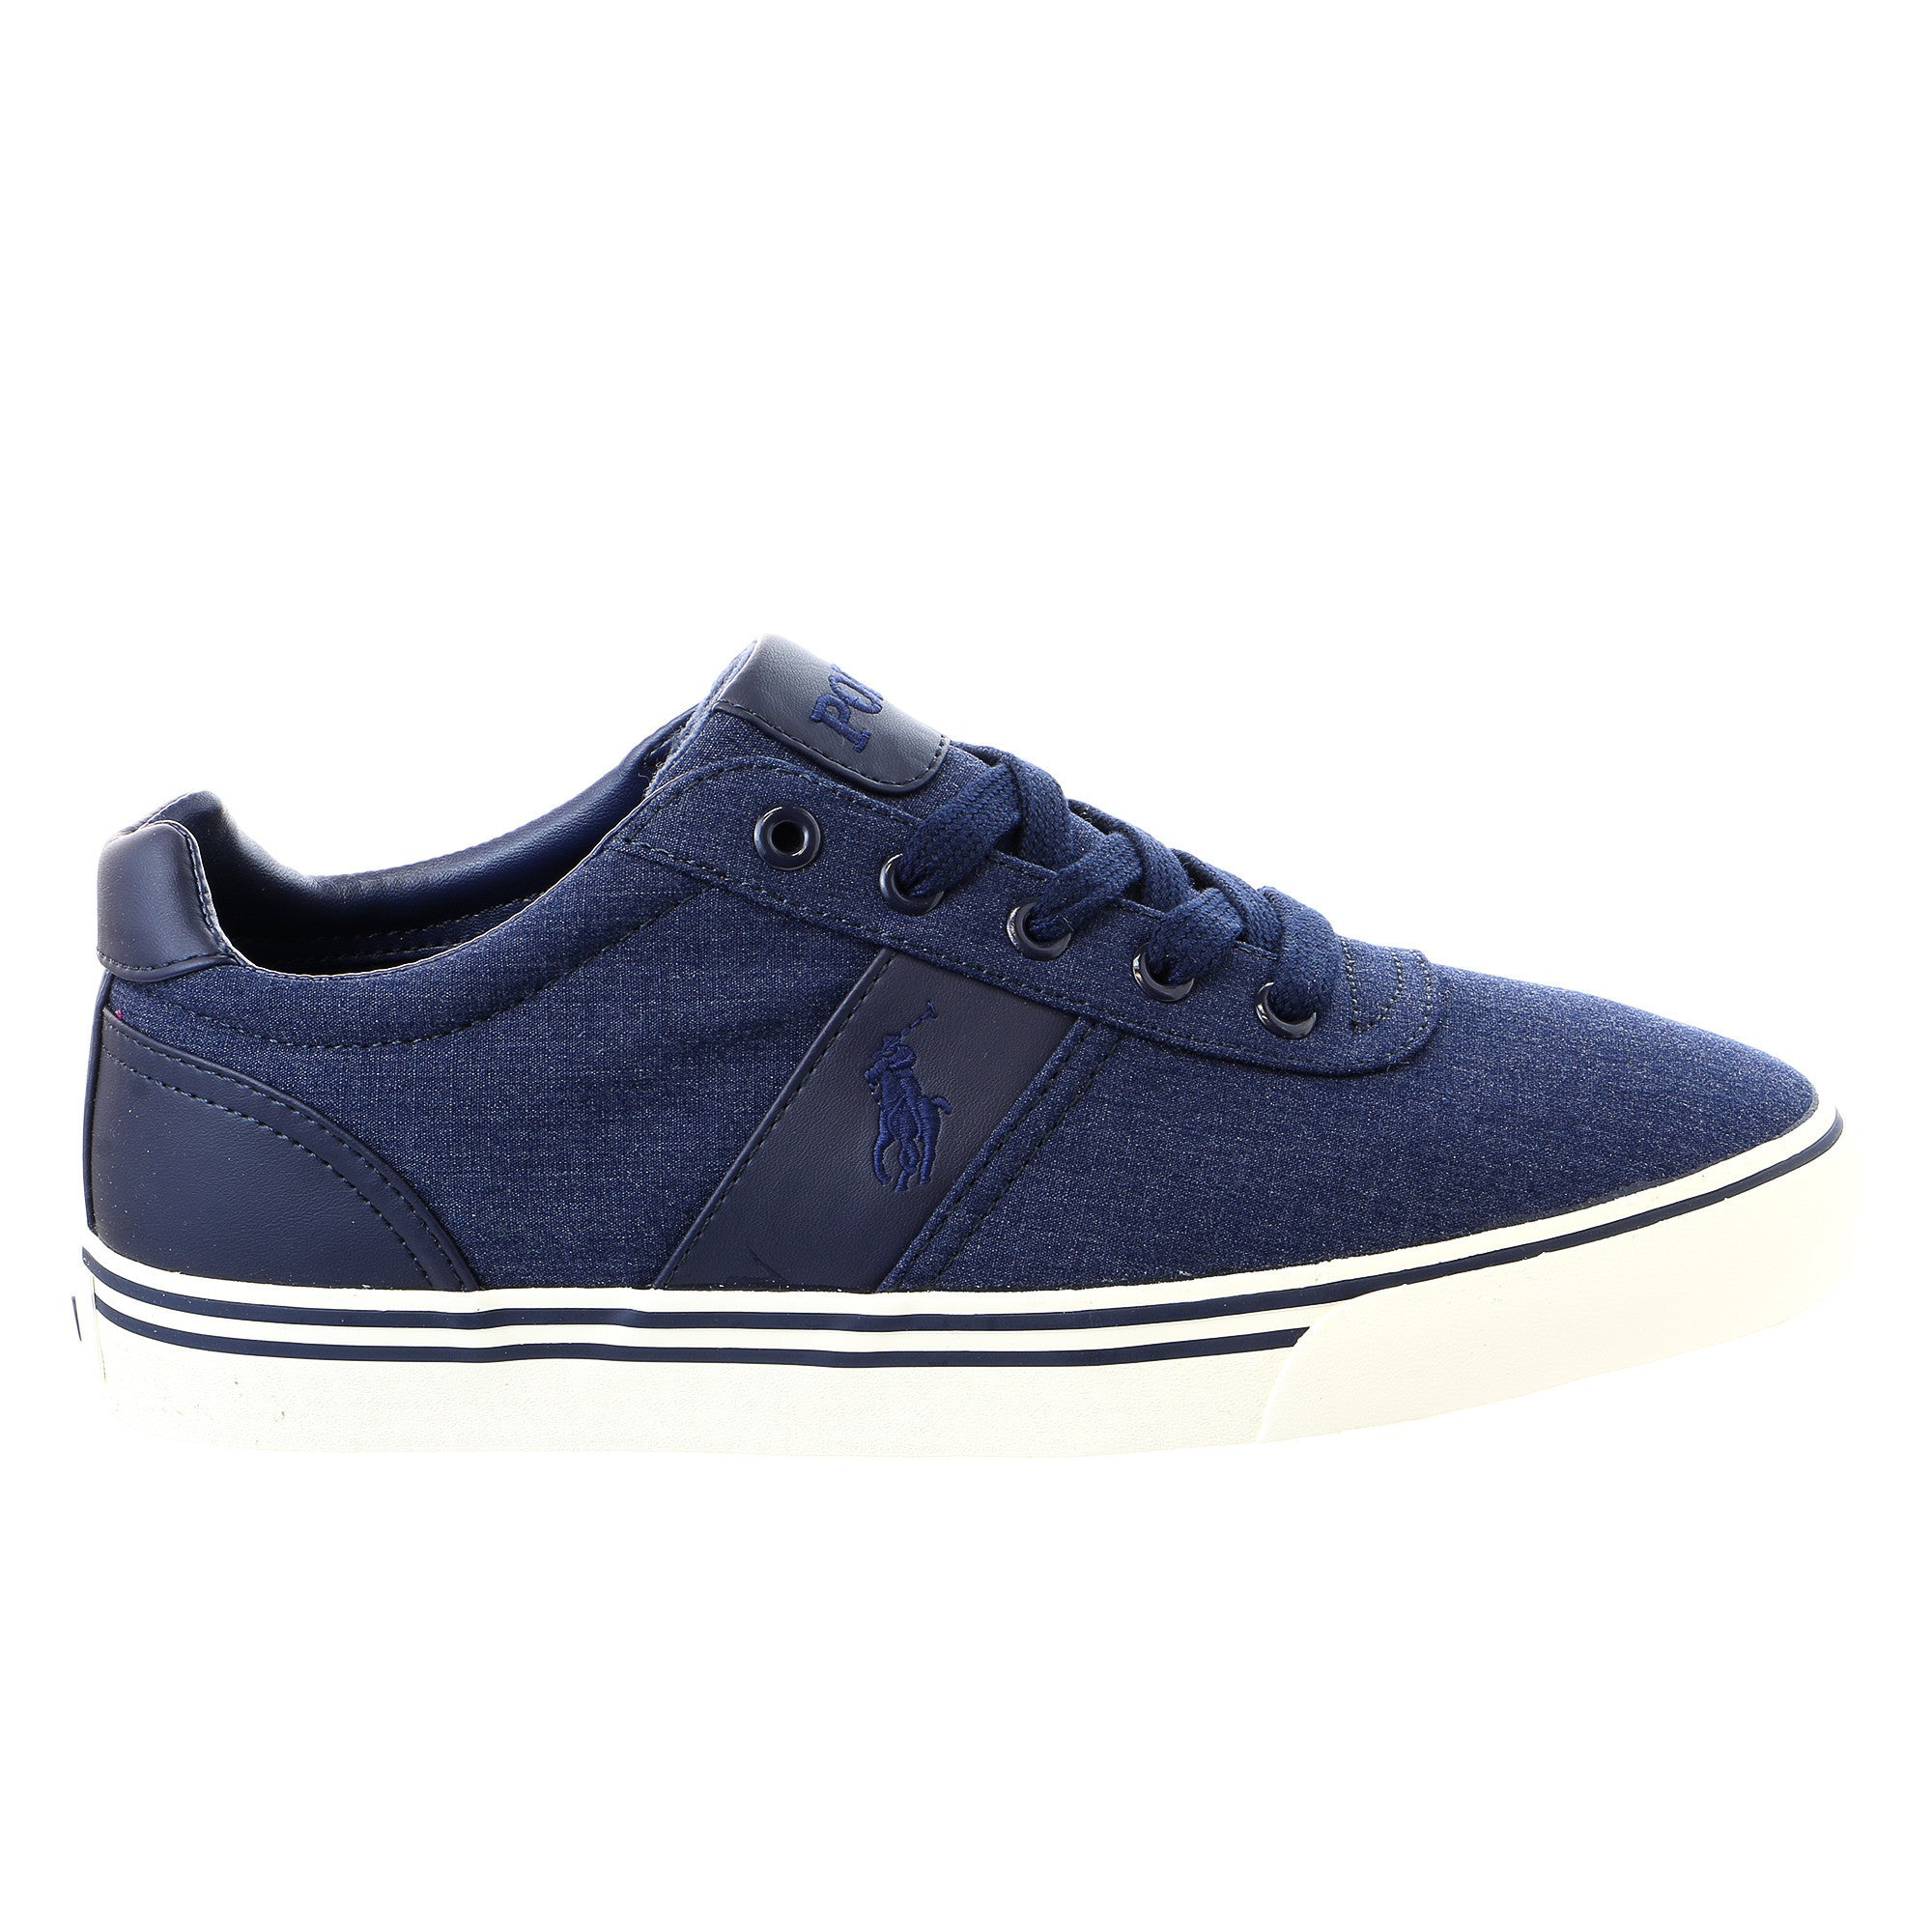 Lauren Hanford Polo Sneaker Ralph Fashion Navy Shoe Nylon Newport WeDb2IE9HY